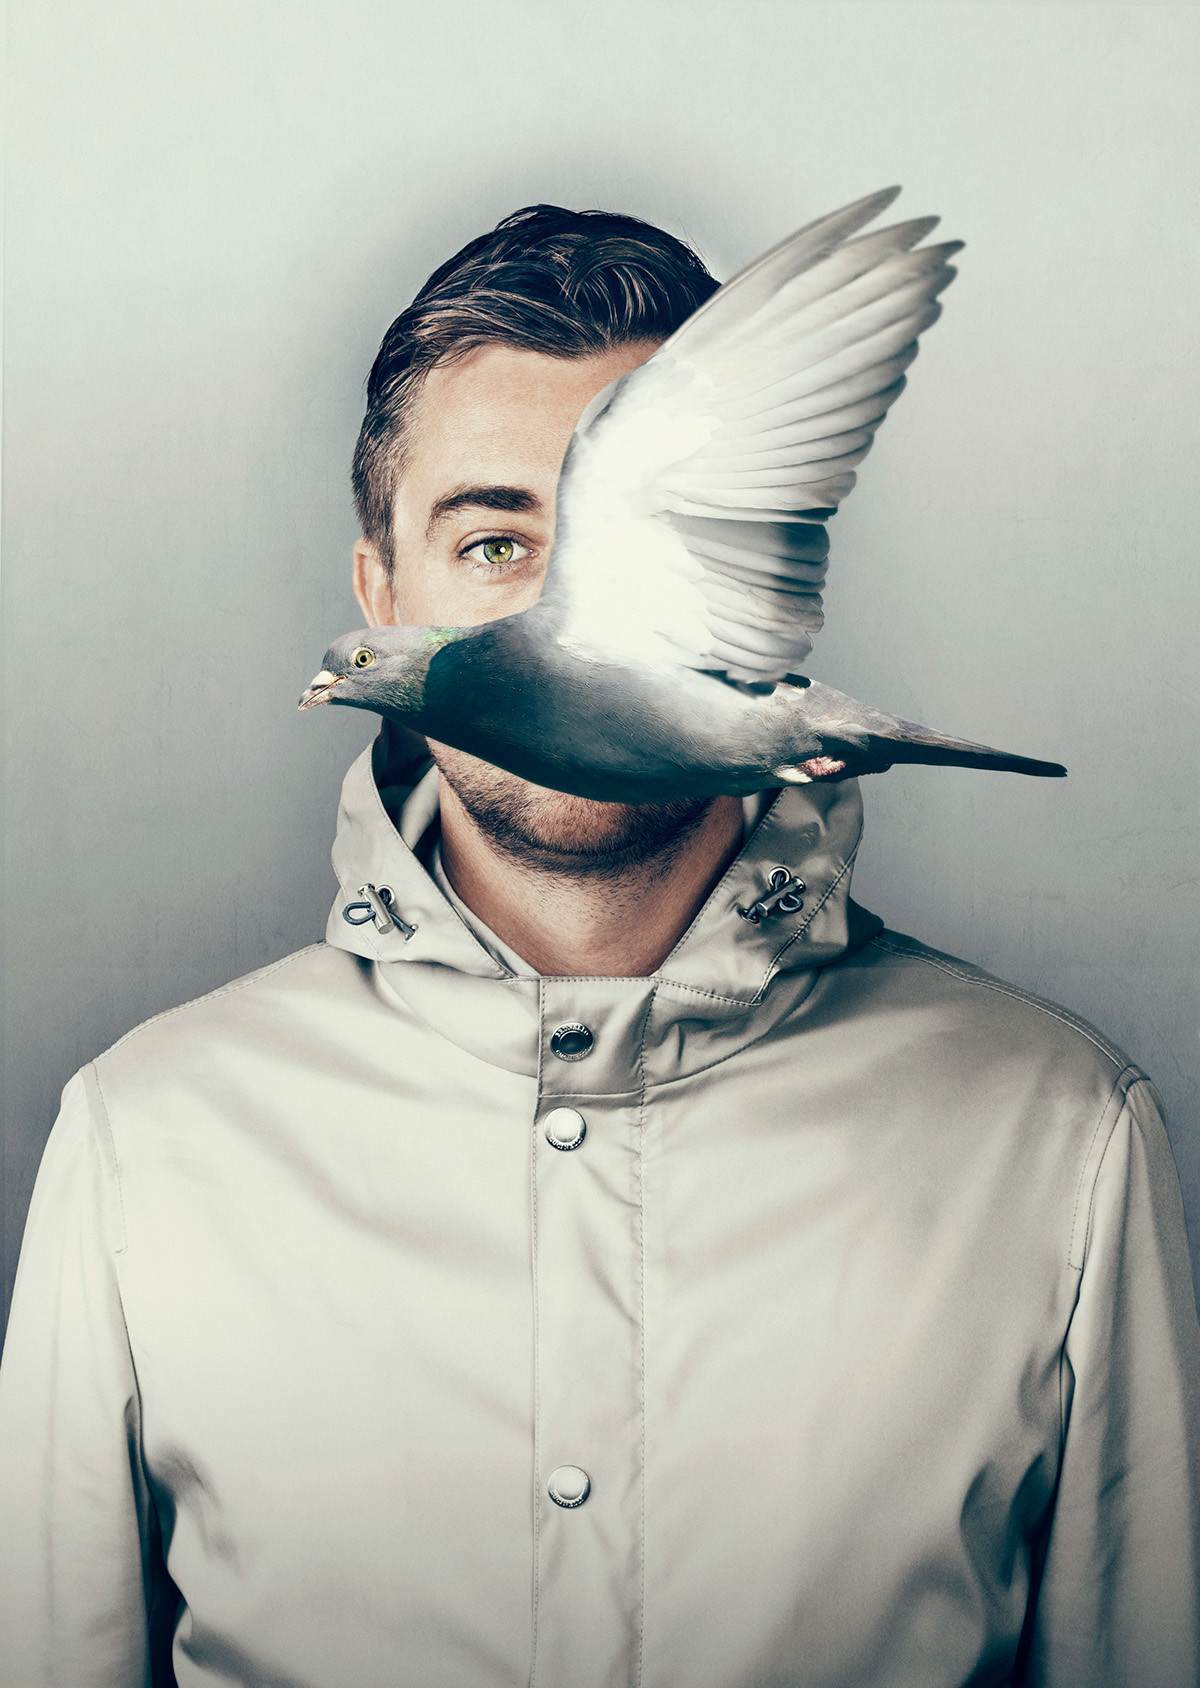 An image of a man with a pigeon flying in front of him.